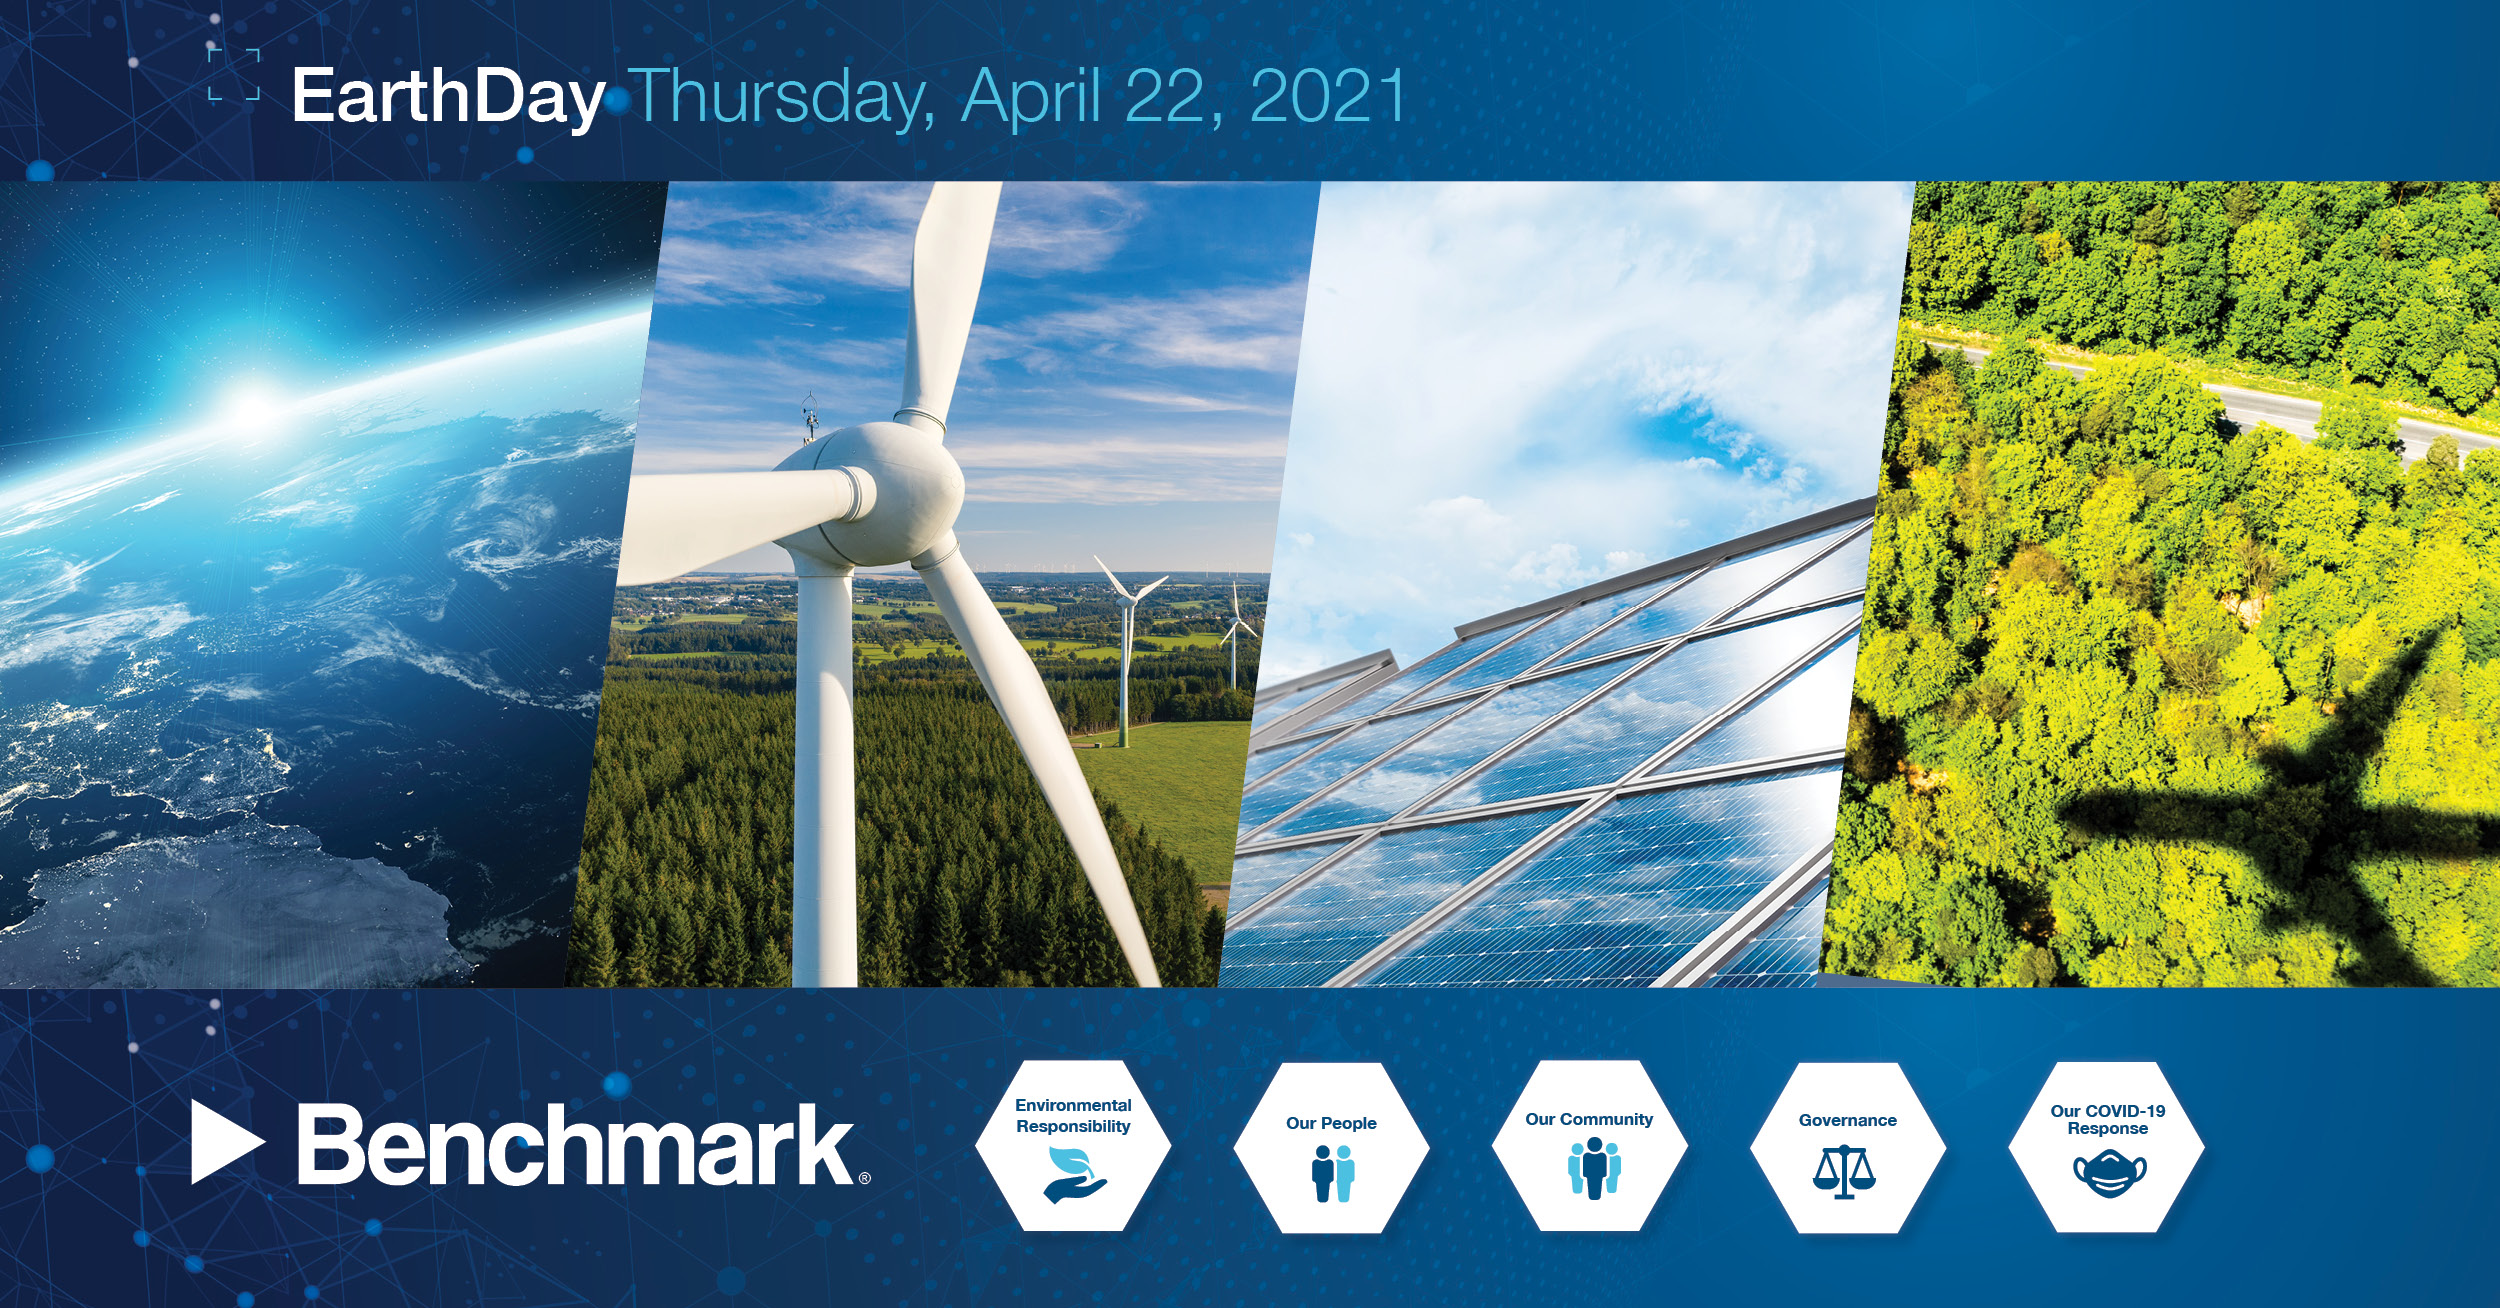 Celebrating Our Sustainability Journey on Earth Day 2021